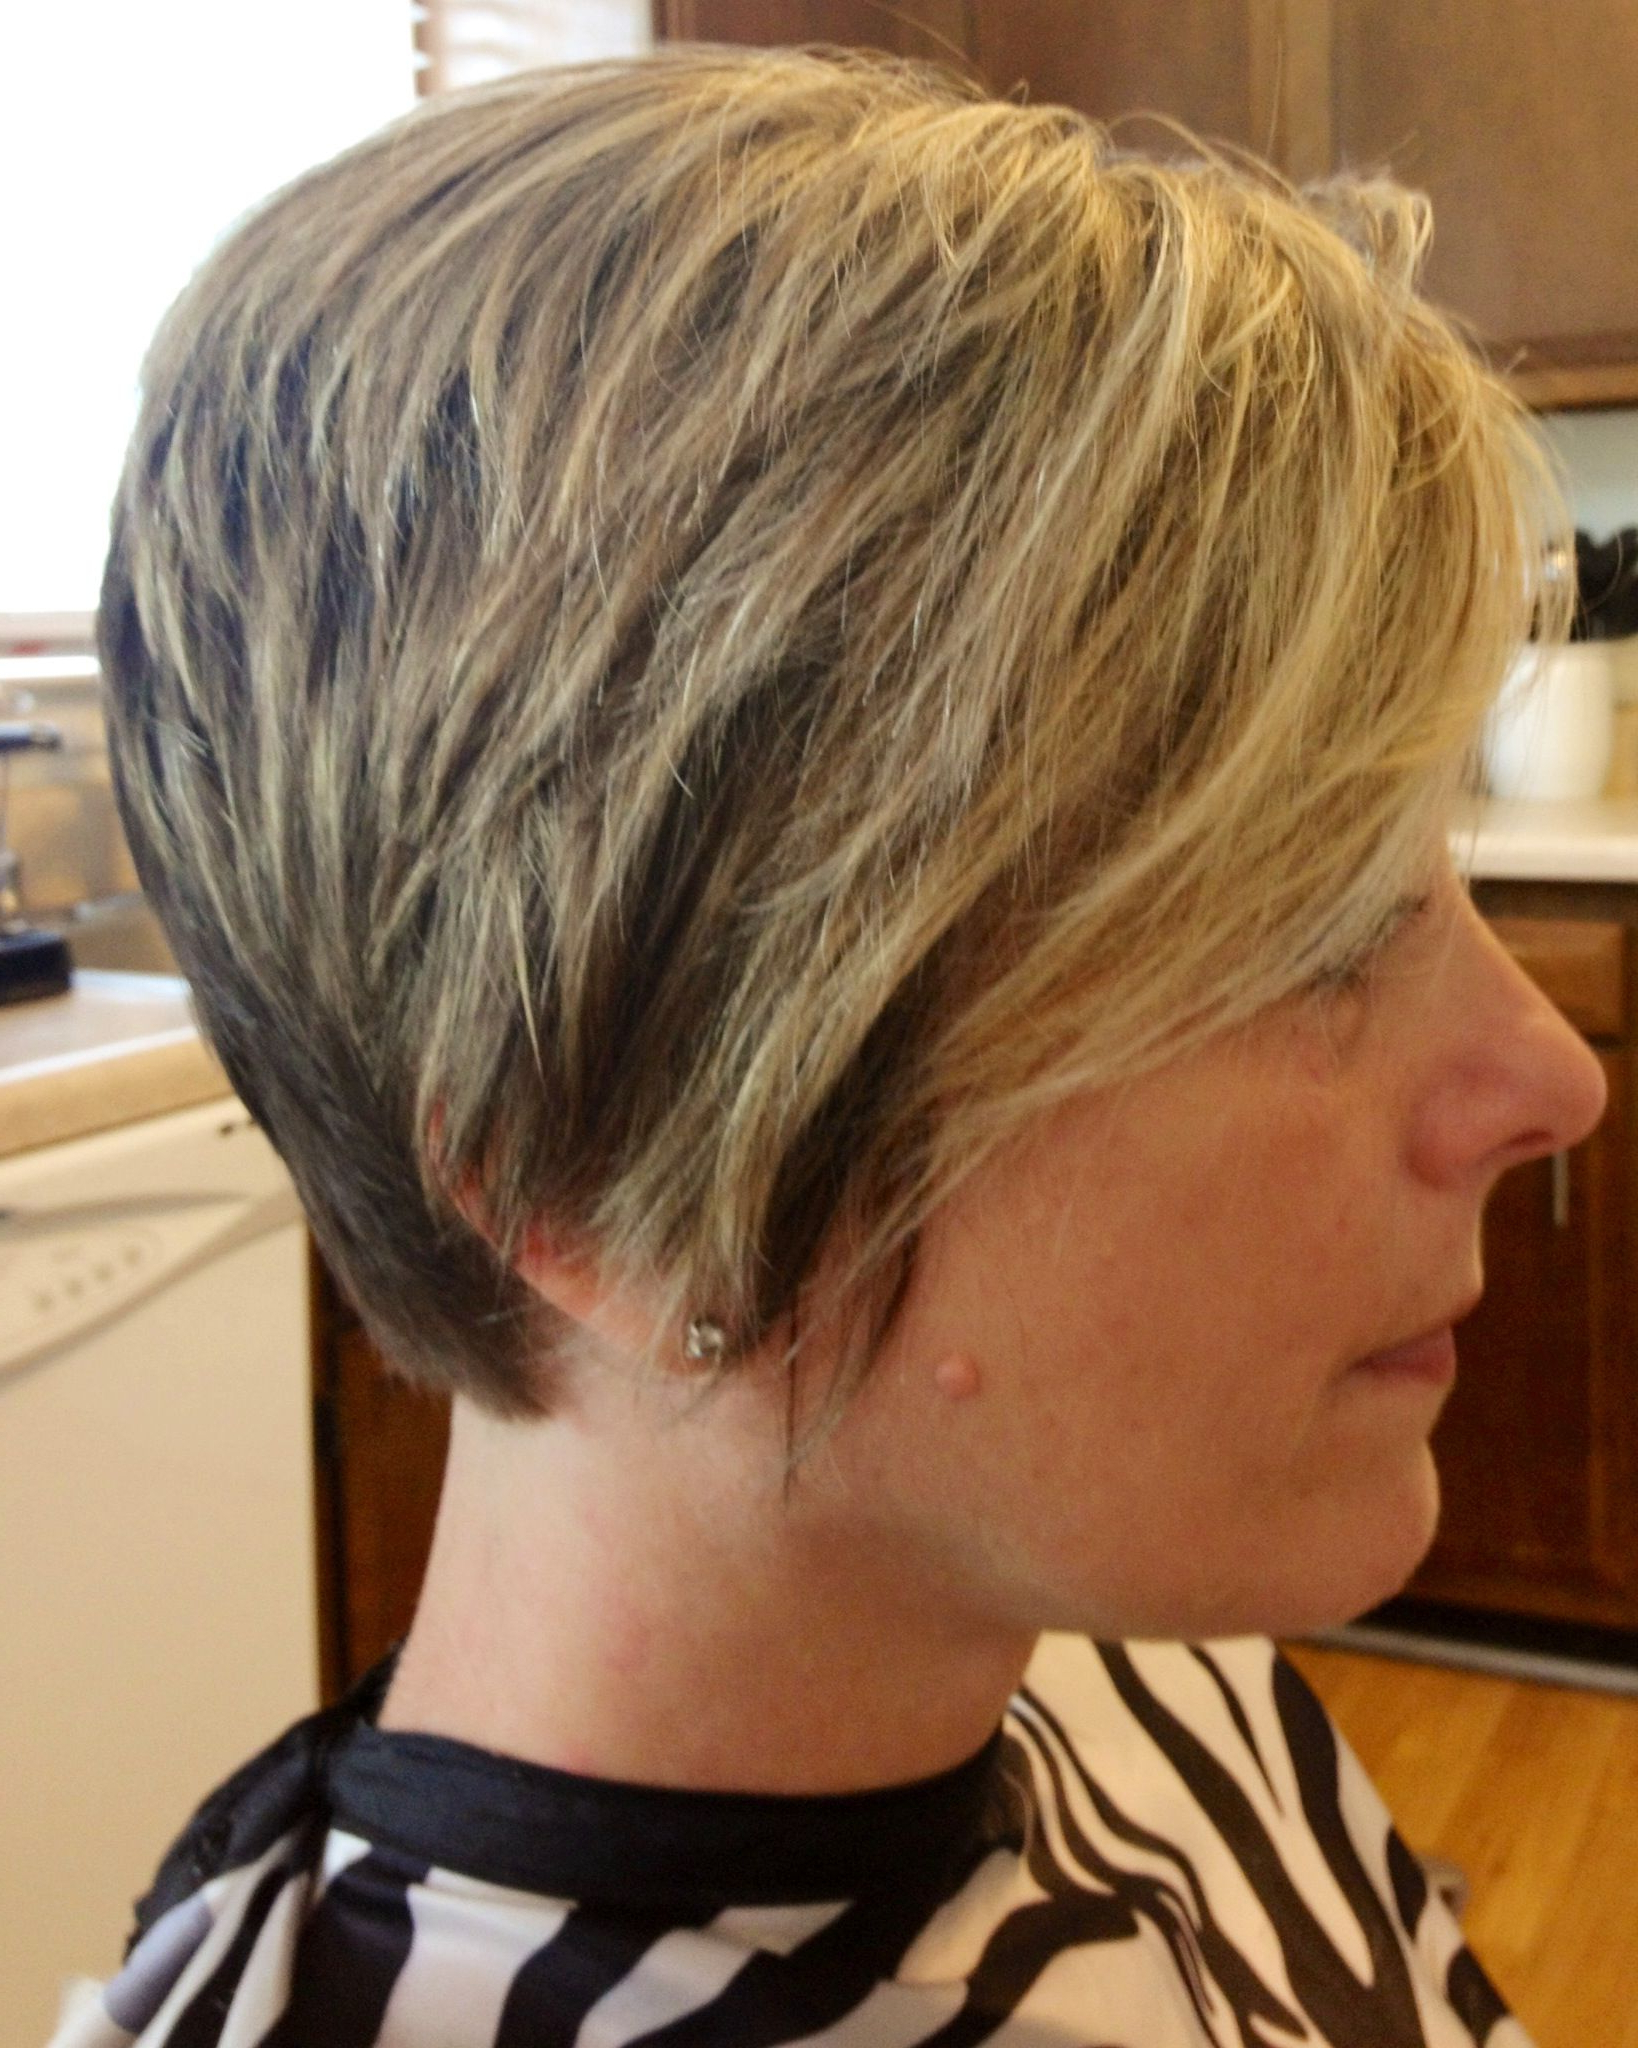 Short Hairstyle With Ears Covered   Primpy   Pinterest   Hair Styles In Short Hairstyles Covering Ears (View 8 of 25)